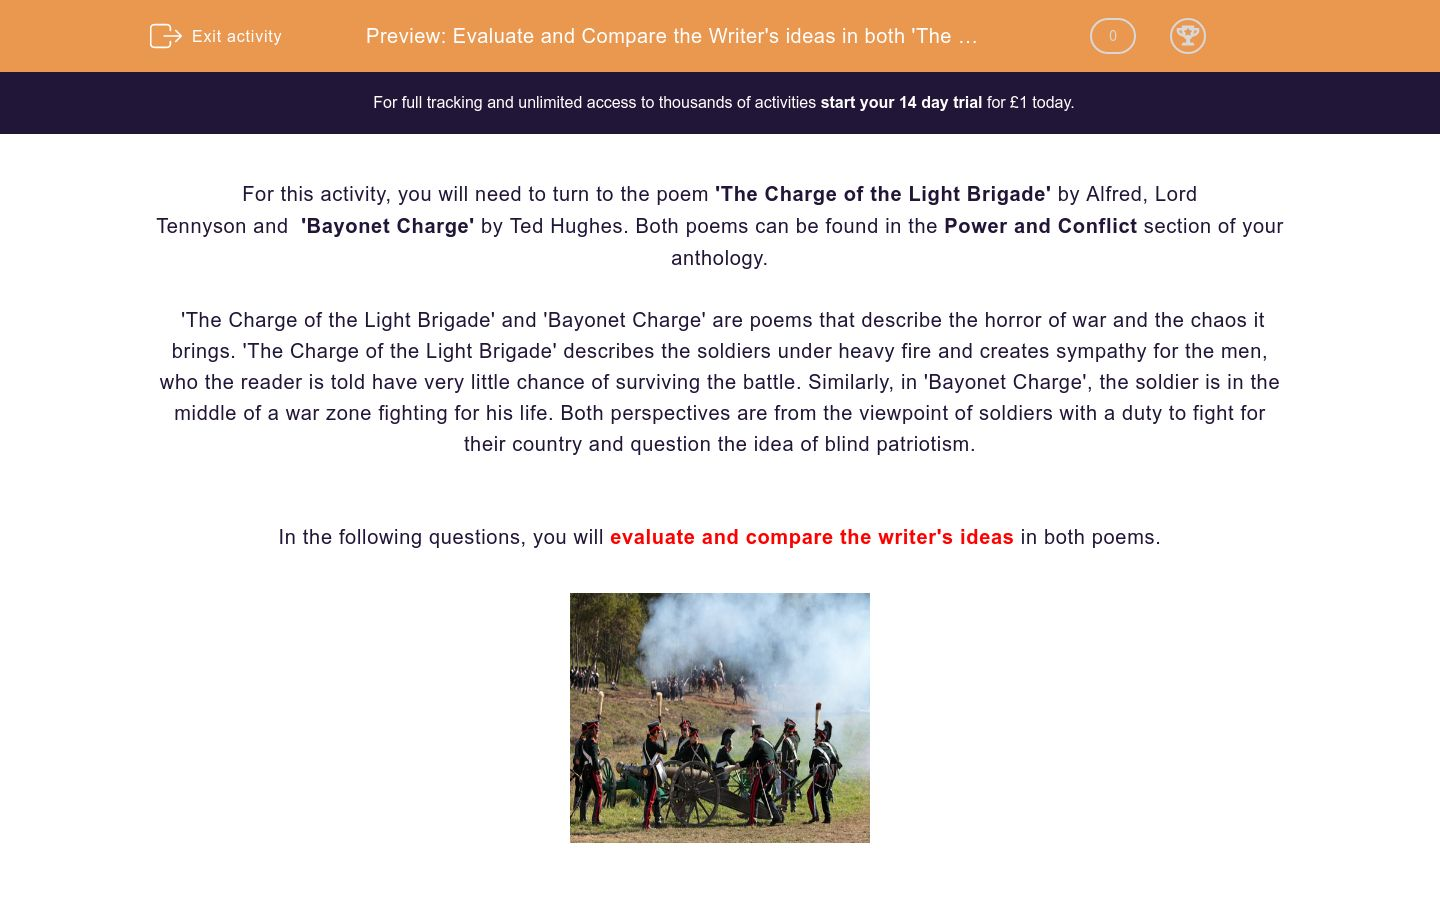 'Evaluate and Compare the Writer's ideas in both 'The Charge of the Light Brigade' by Alfred, Lord Tennyson and 'Bayonet Charge' by Ted Hughes' worksheet